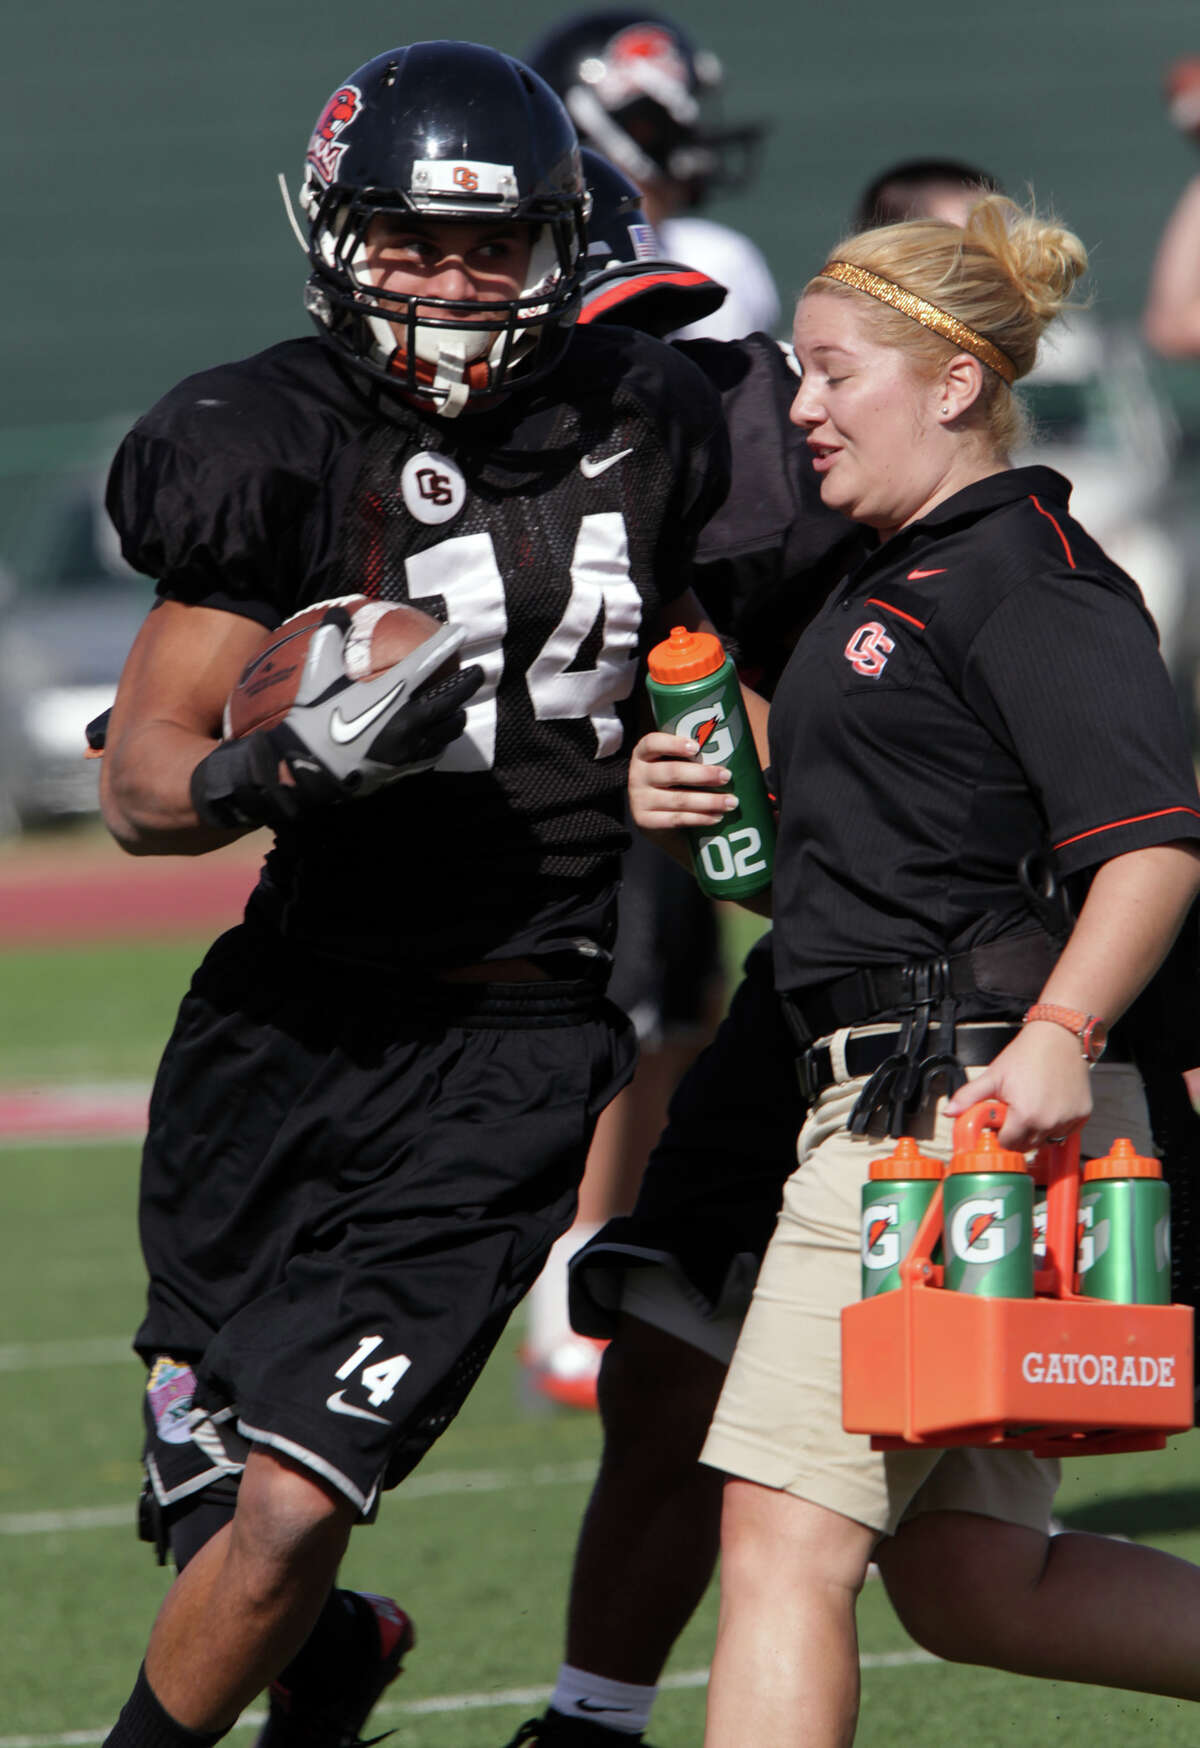 Oregon State Beavers Jordan Poyer nearly colides with a trainer during practice at Benson Stadium, University of the Incarnate Word. Monday, Dec. 24, 2012.